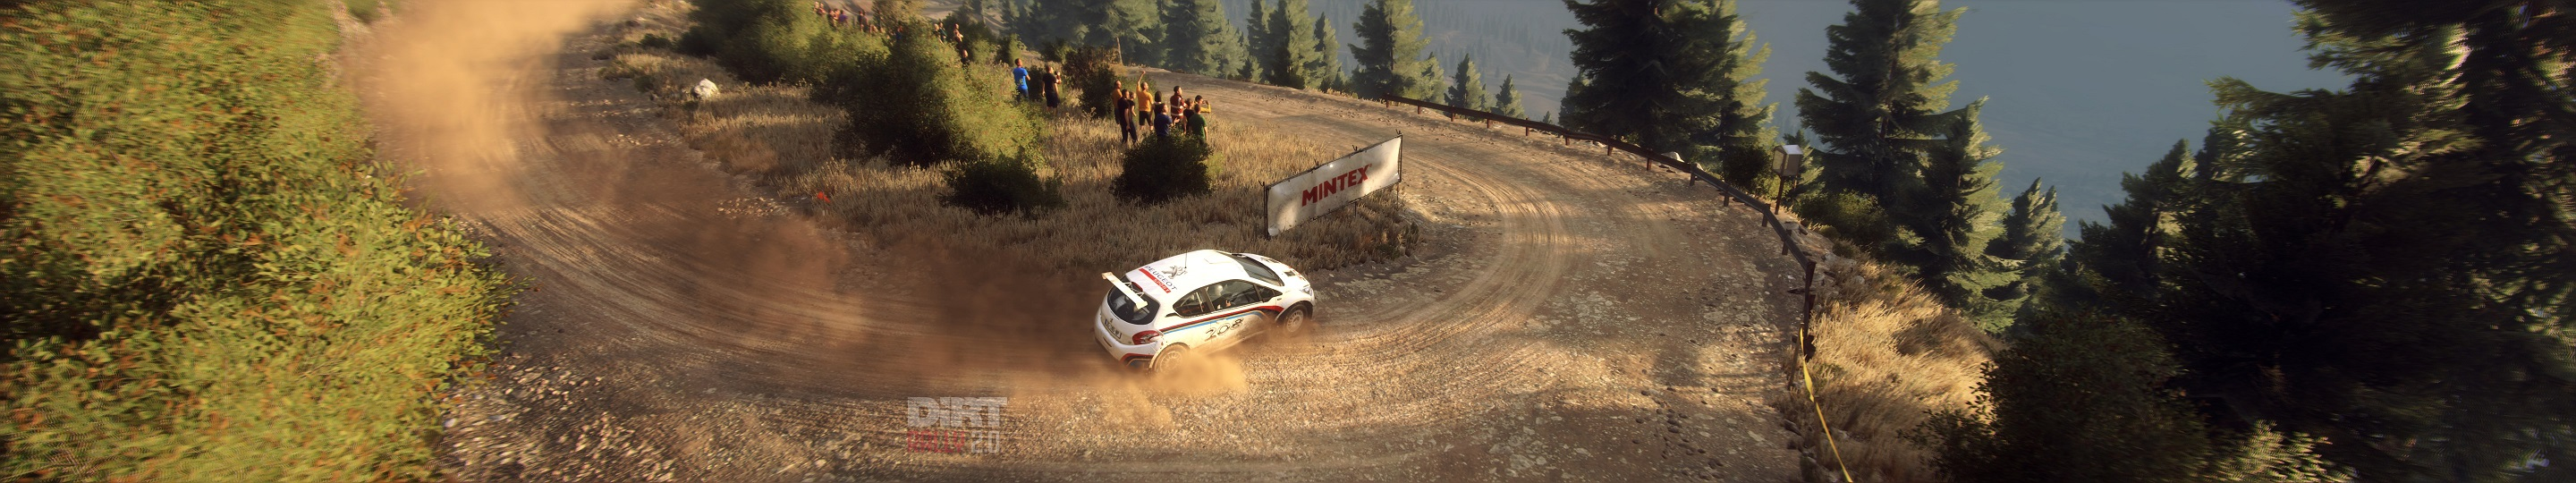 1 DIRT RALLY 2 GREECE with R5 PEUGEOT copy.jpg